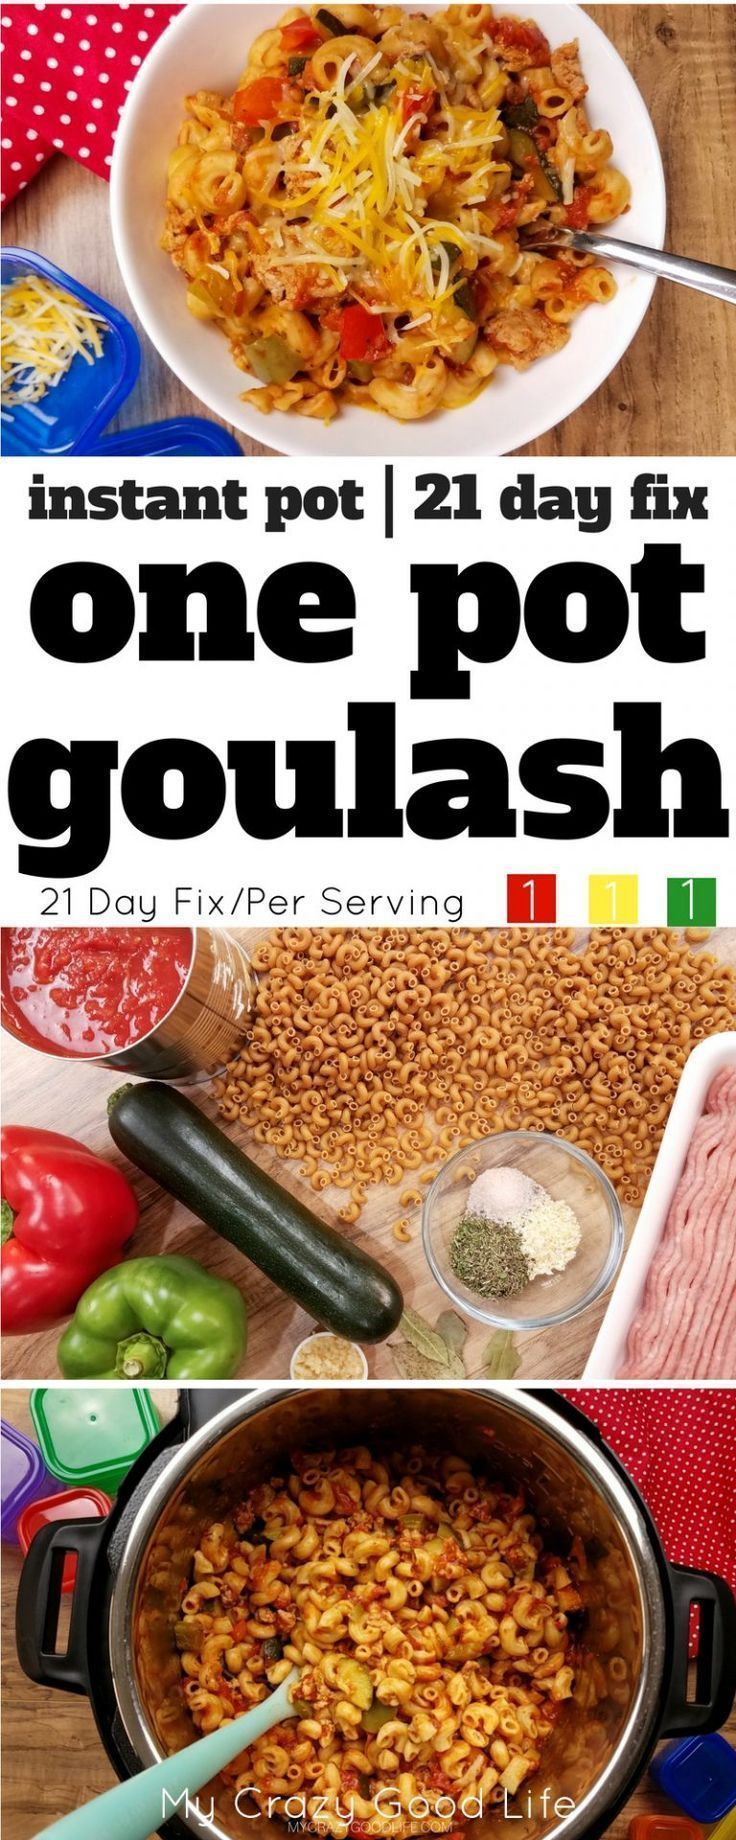 This healthier version of goulash is a family favorite–we make it about once a week! With whole wheat noodles and extra veggies, it's 21 Day Fix friendly, too! Instant Pot Goulash | One Pot Goulash | Instant Pot Dinner